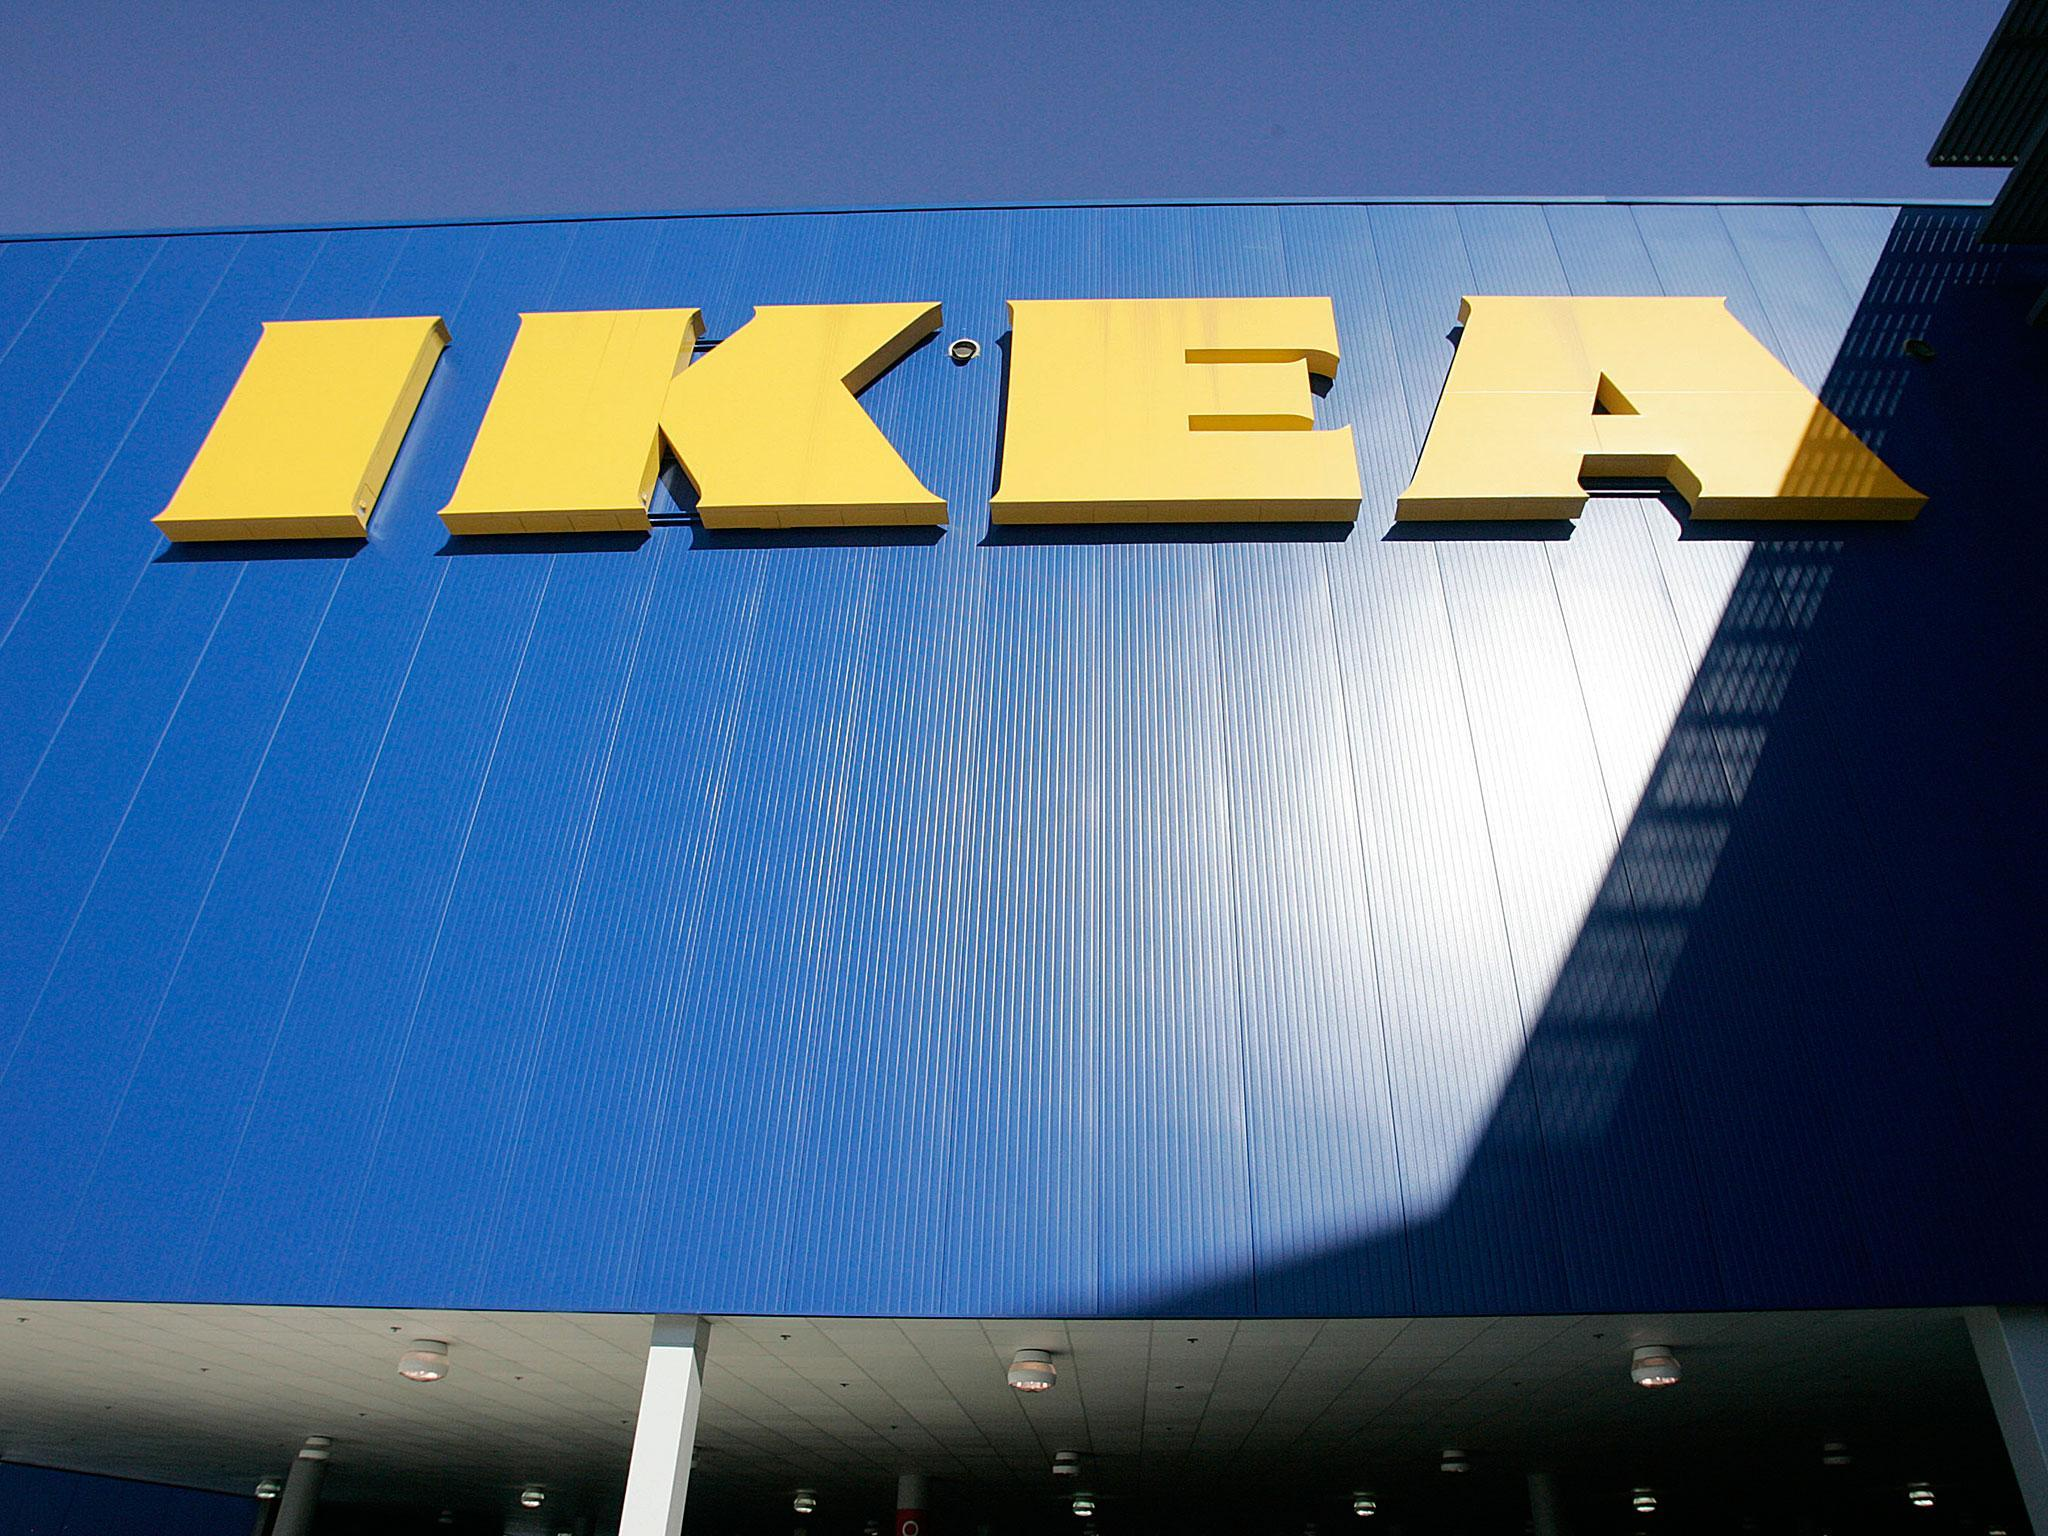 ikea to sell rugs and textiles made by syrian refugees in